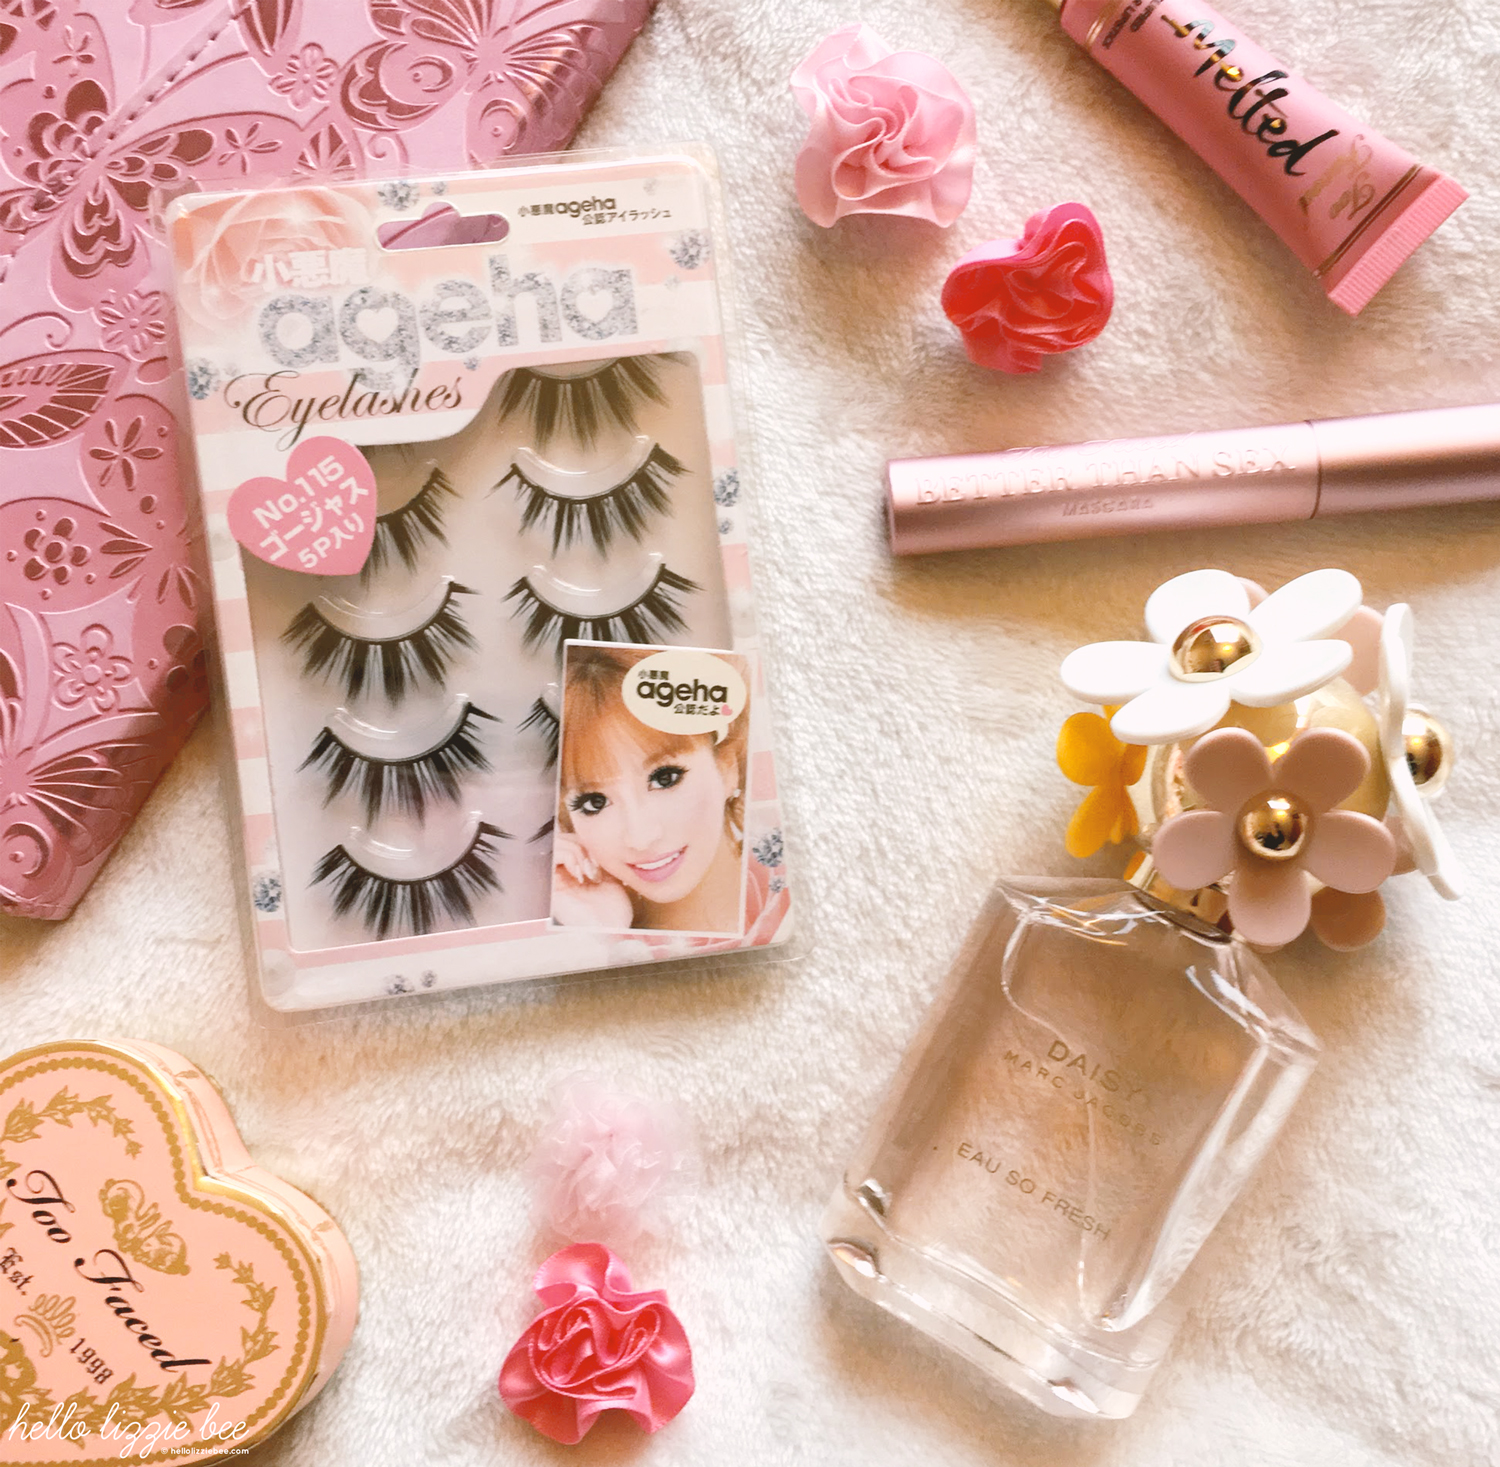 gyaru makeup essentials, false lashes